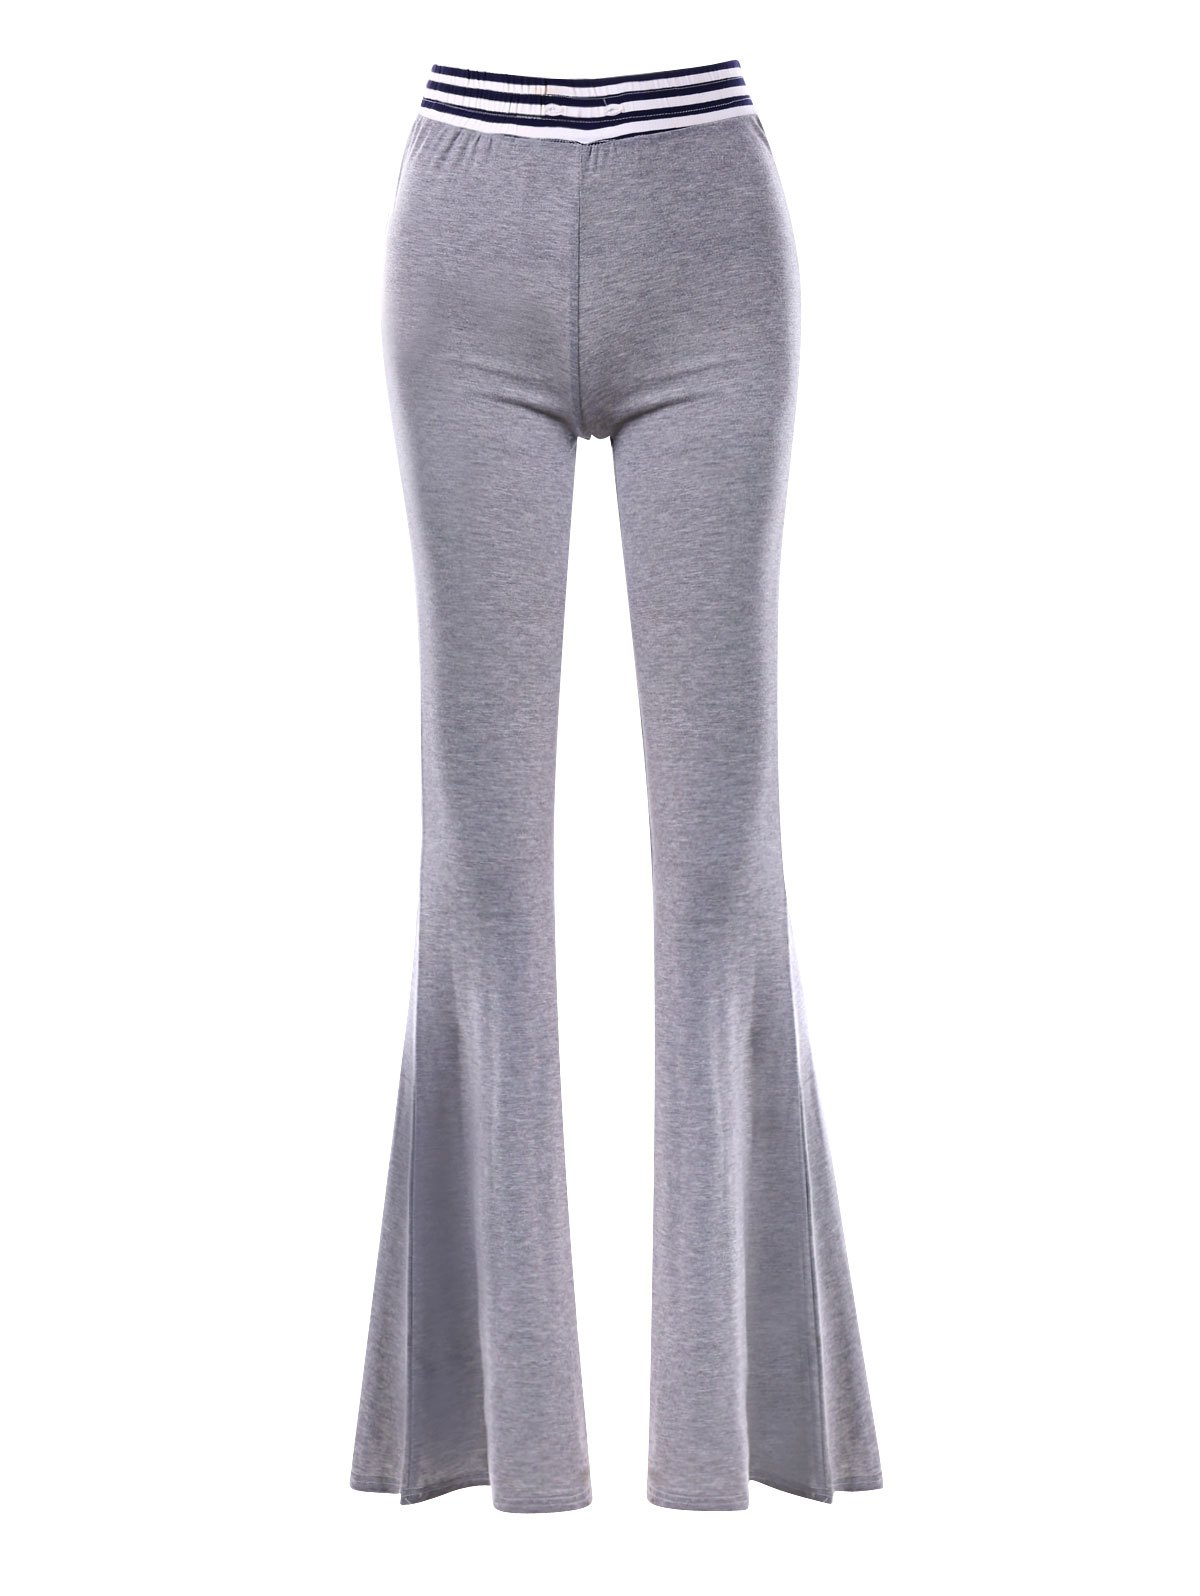 Striped Insert Maxi Flare Pants - GRAY 2XL